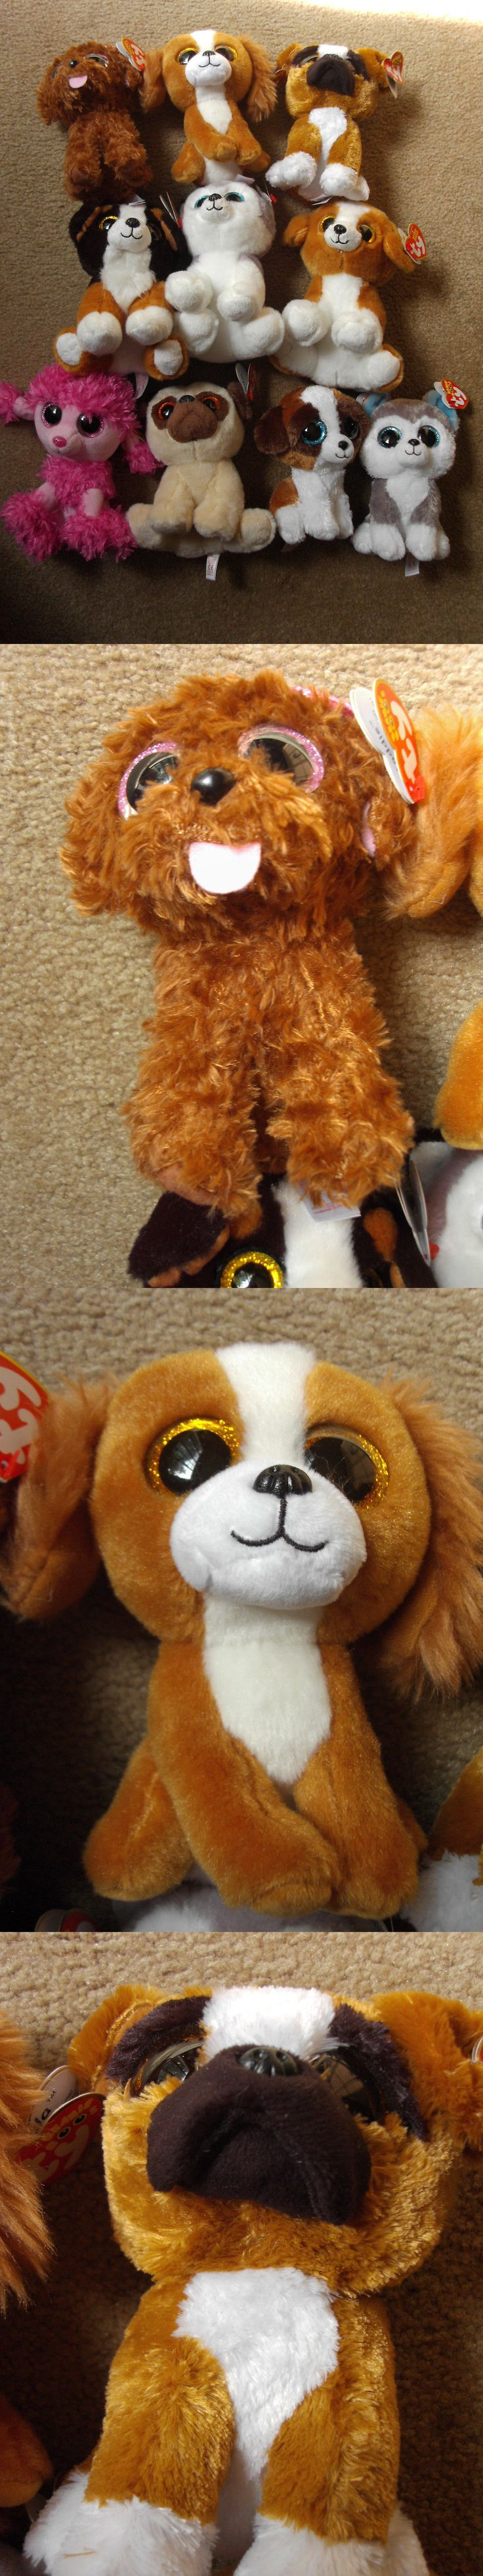 Current 438: New Lot 10 Ty Beanie Boos Plush Dogs Slush,Roscoe,Pat,Tala,Buff,Snick,Brutus,Bru -> BUY IT NOW ONLY: $38.99 on eBay!